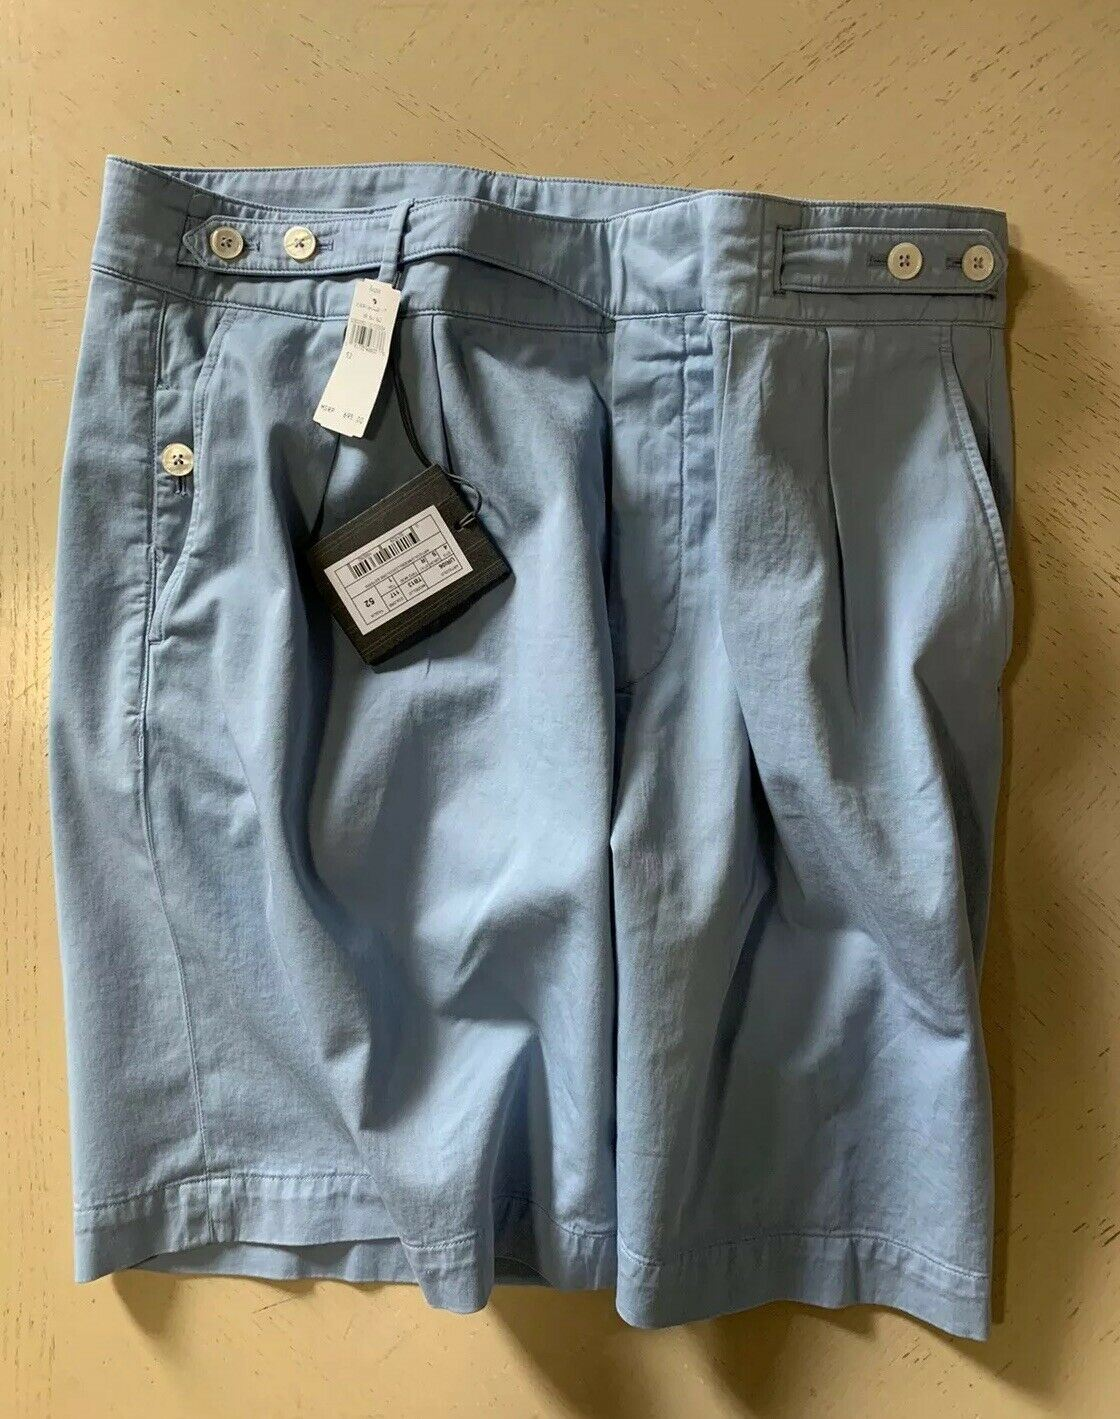 NWT $695 Ermenegildo Zegna Pleated Short Pants Blue 36 US ( 52 Eu )